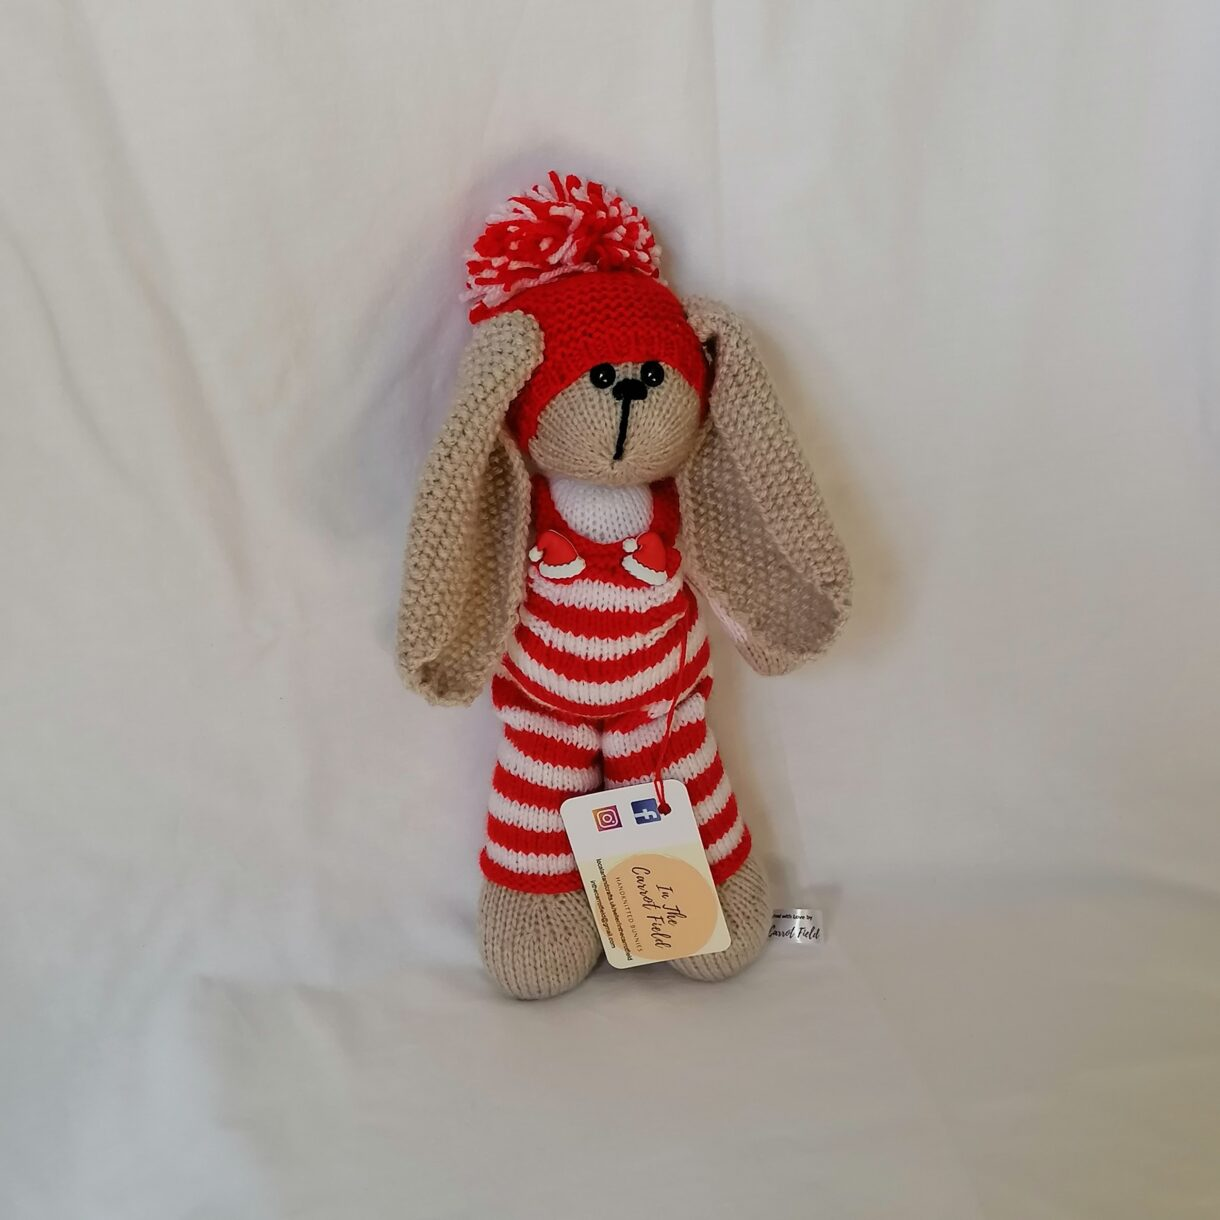 Hand-knitted-soft-toy-Christmas-bunny-red-white-hat-pompom-front